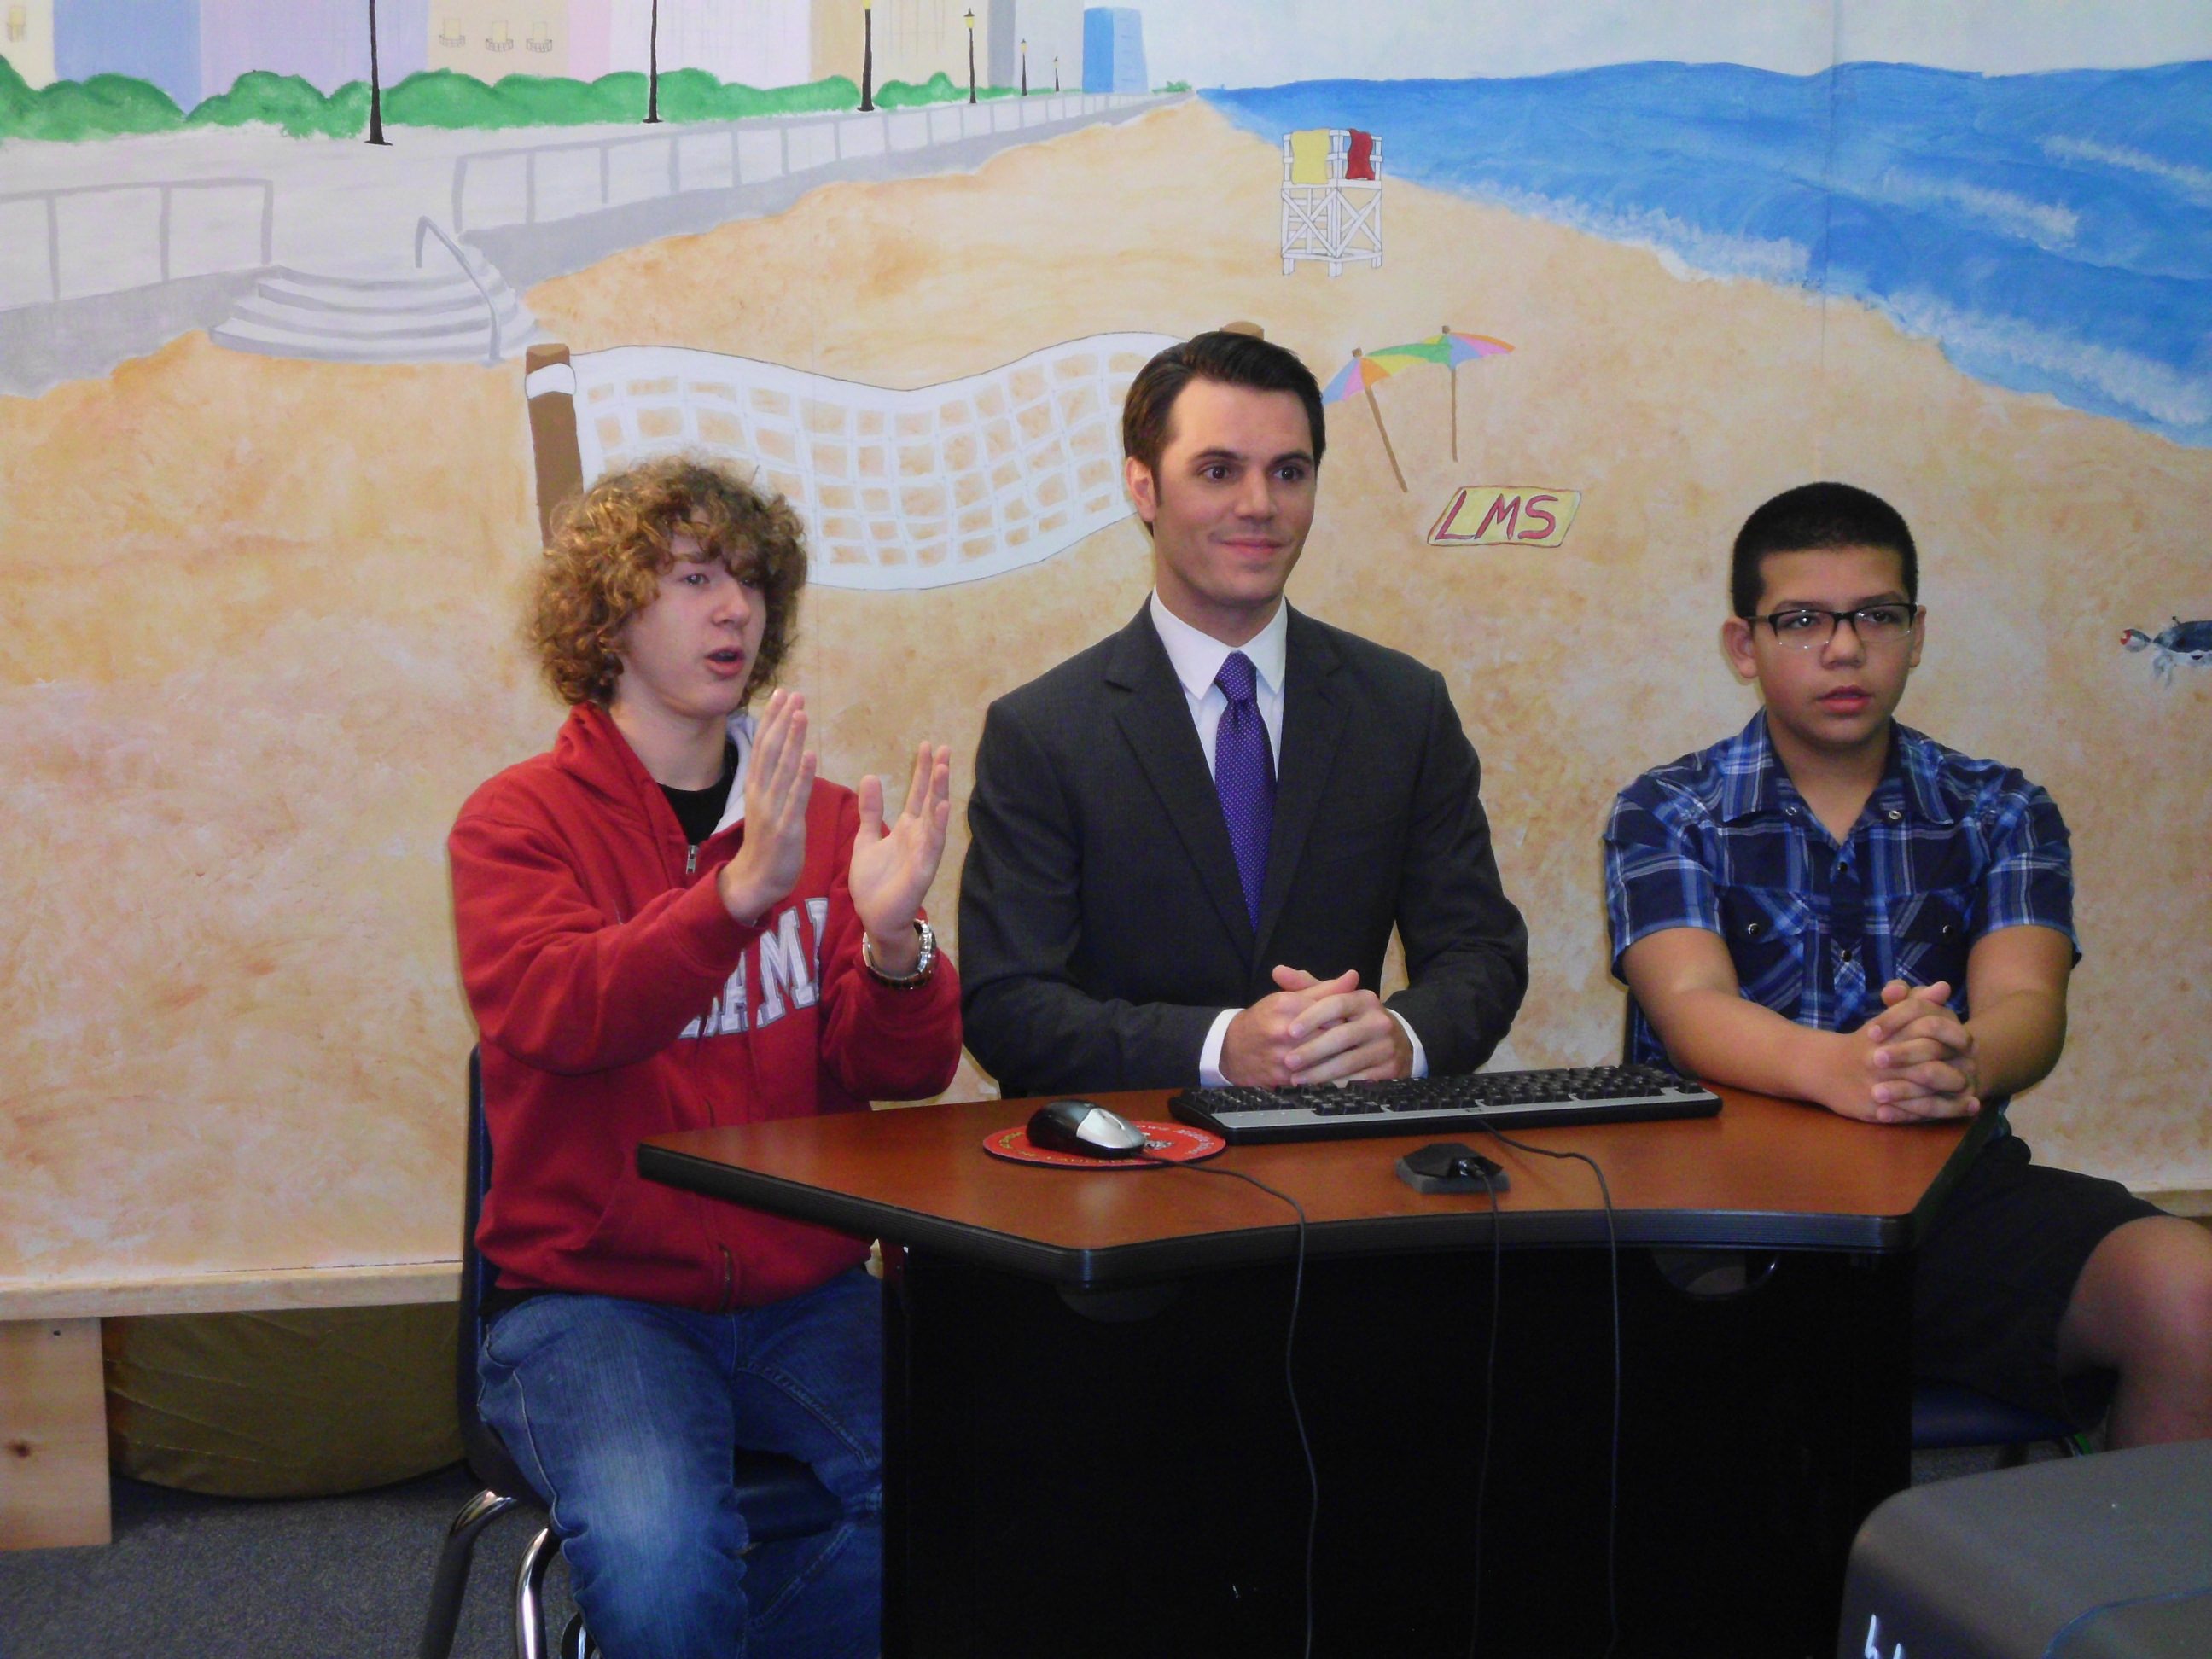 WTKR Meteorologist Myles Henderson joined Landstown Middle School's Channel 21 Crew for the morning announcements and then spoke to all Earth Science students about a career in Meteorology, the Jet Stream, the Polar Vortex and Lake-Effect Snow.  Here, from left to right, are eighth-grader Ethan Snyder, Meteorologist Myles Henderson and eighth-grader Jacob Sekerak.